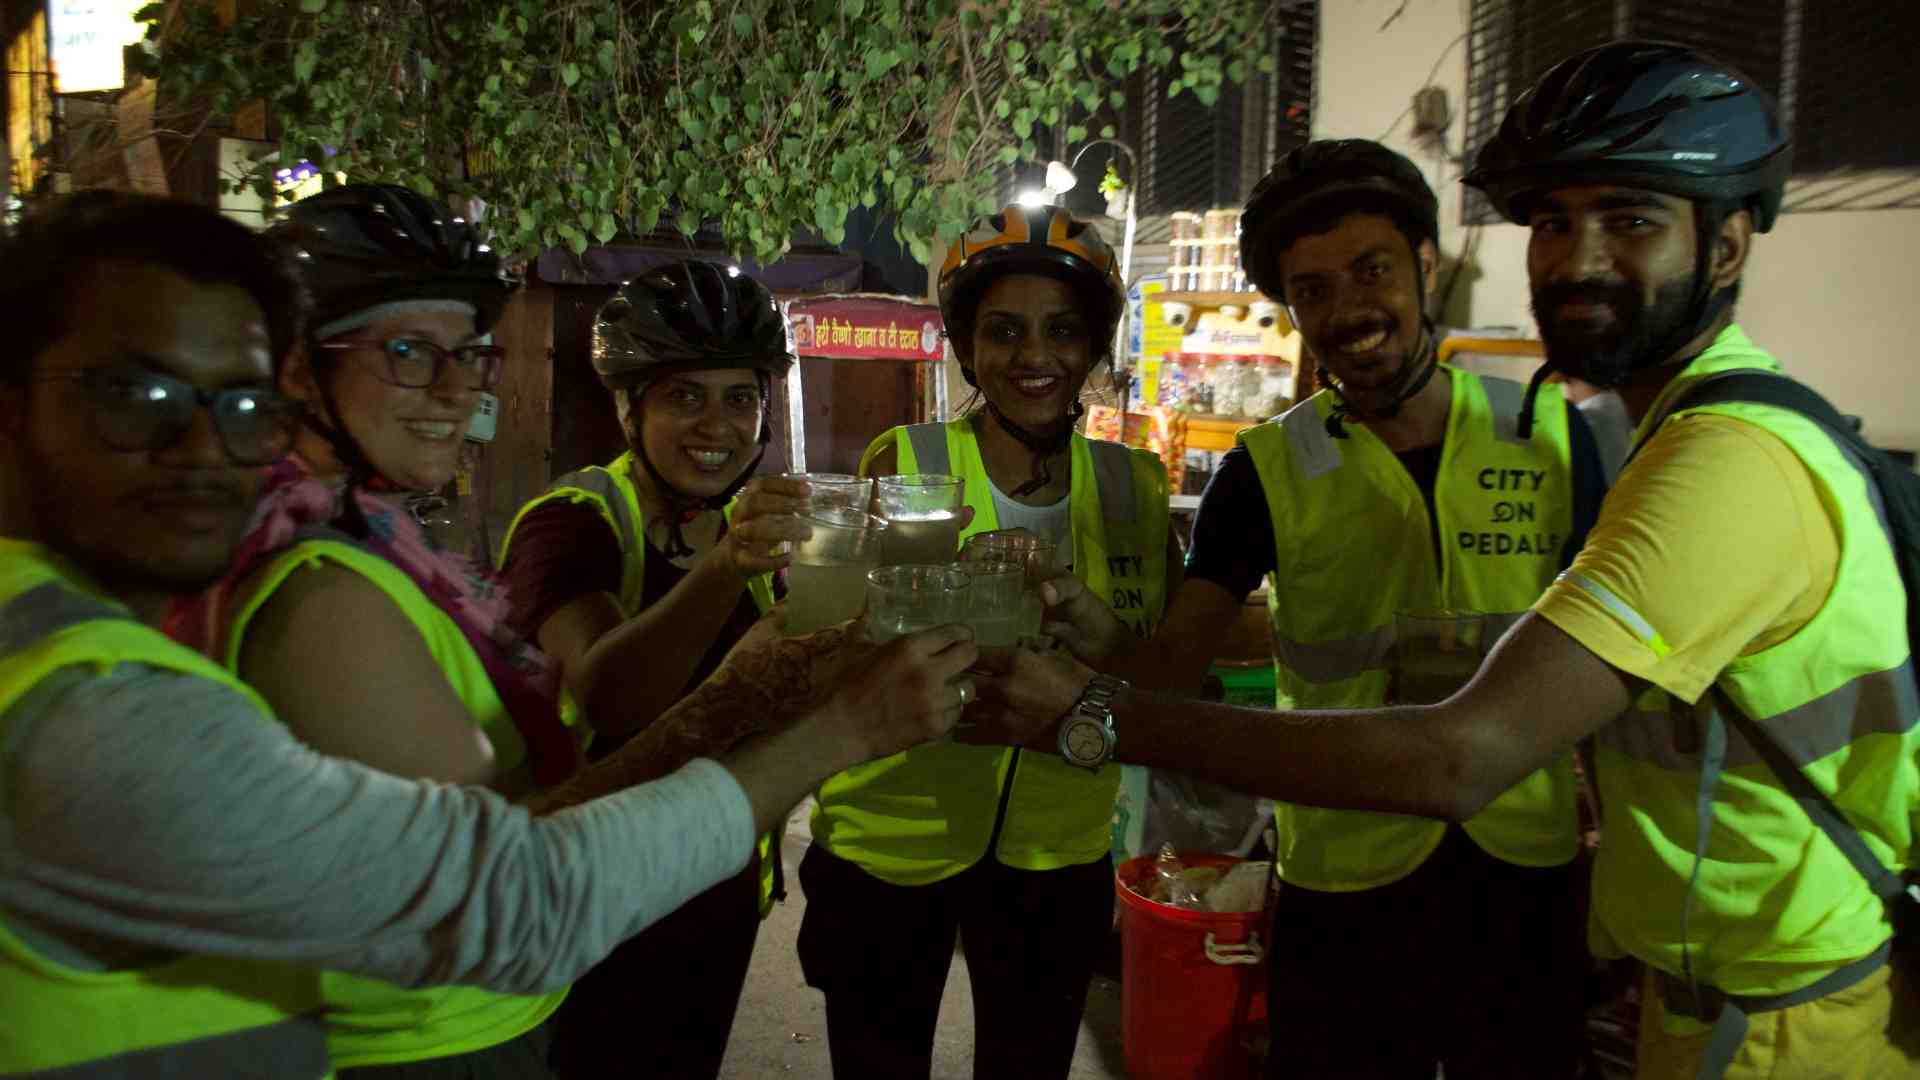 Lemon Soda in summers is part of the Amritsar Street Food Bicycle Tour